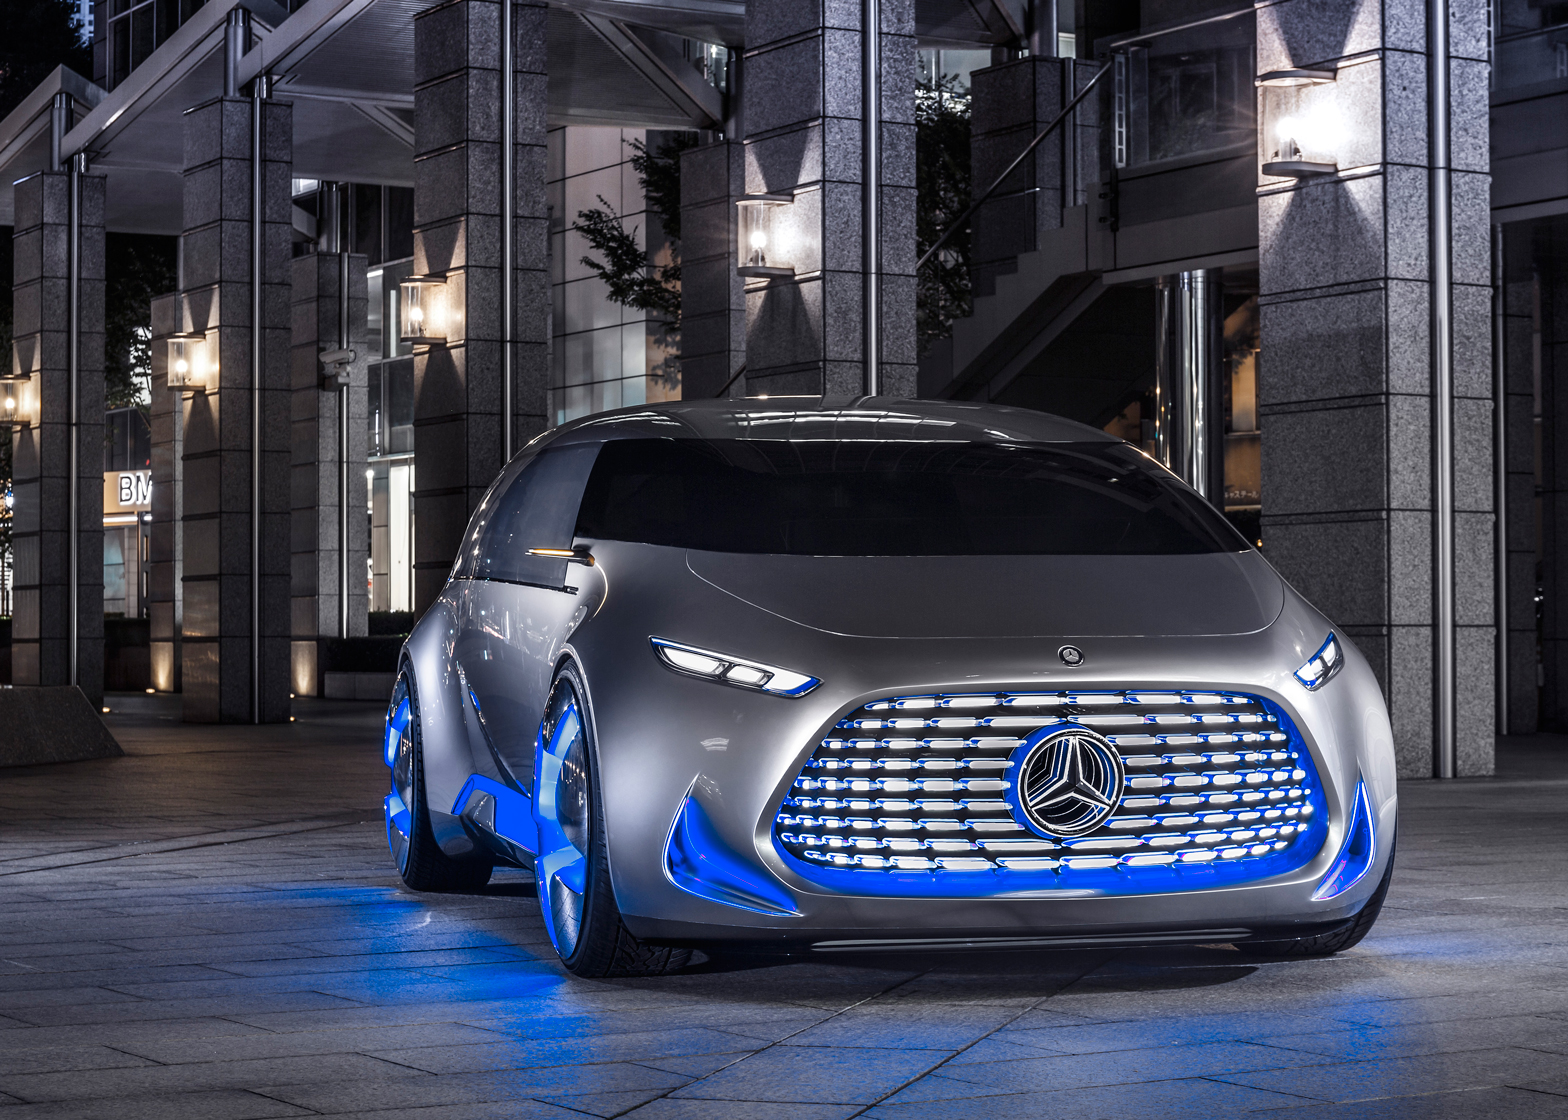 Mercedes- Benz To Desing and Manufacture 4 Electric Cars By 2020